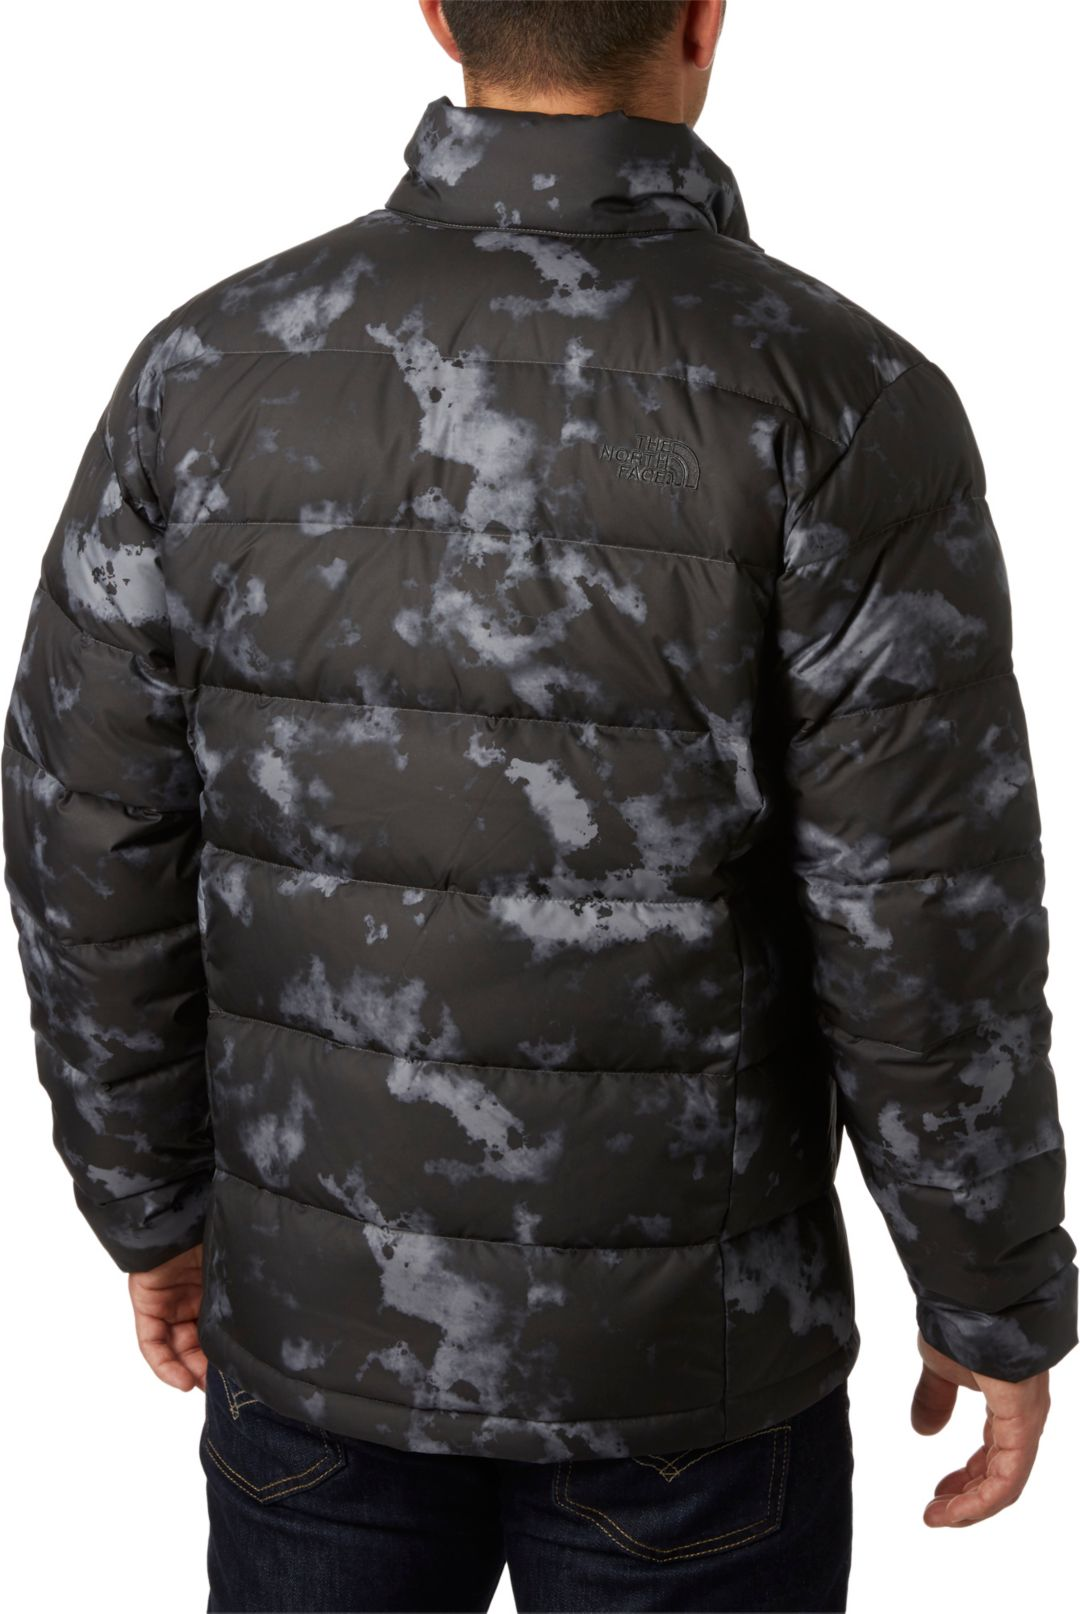 3b5a17cc079 The North Face Men's Alpz Down Jacket